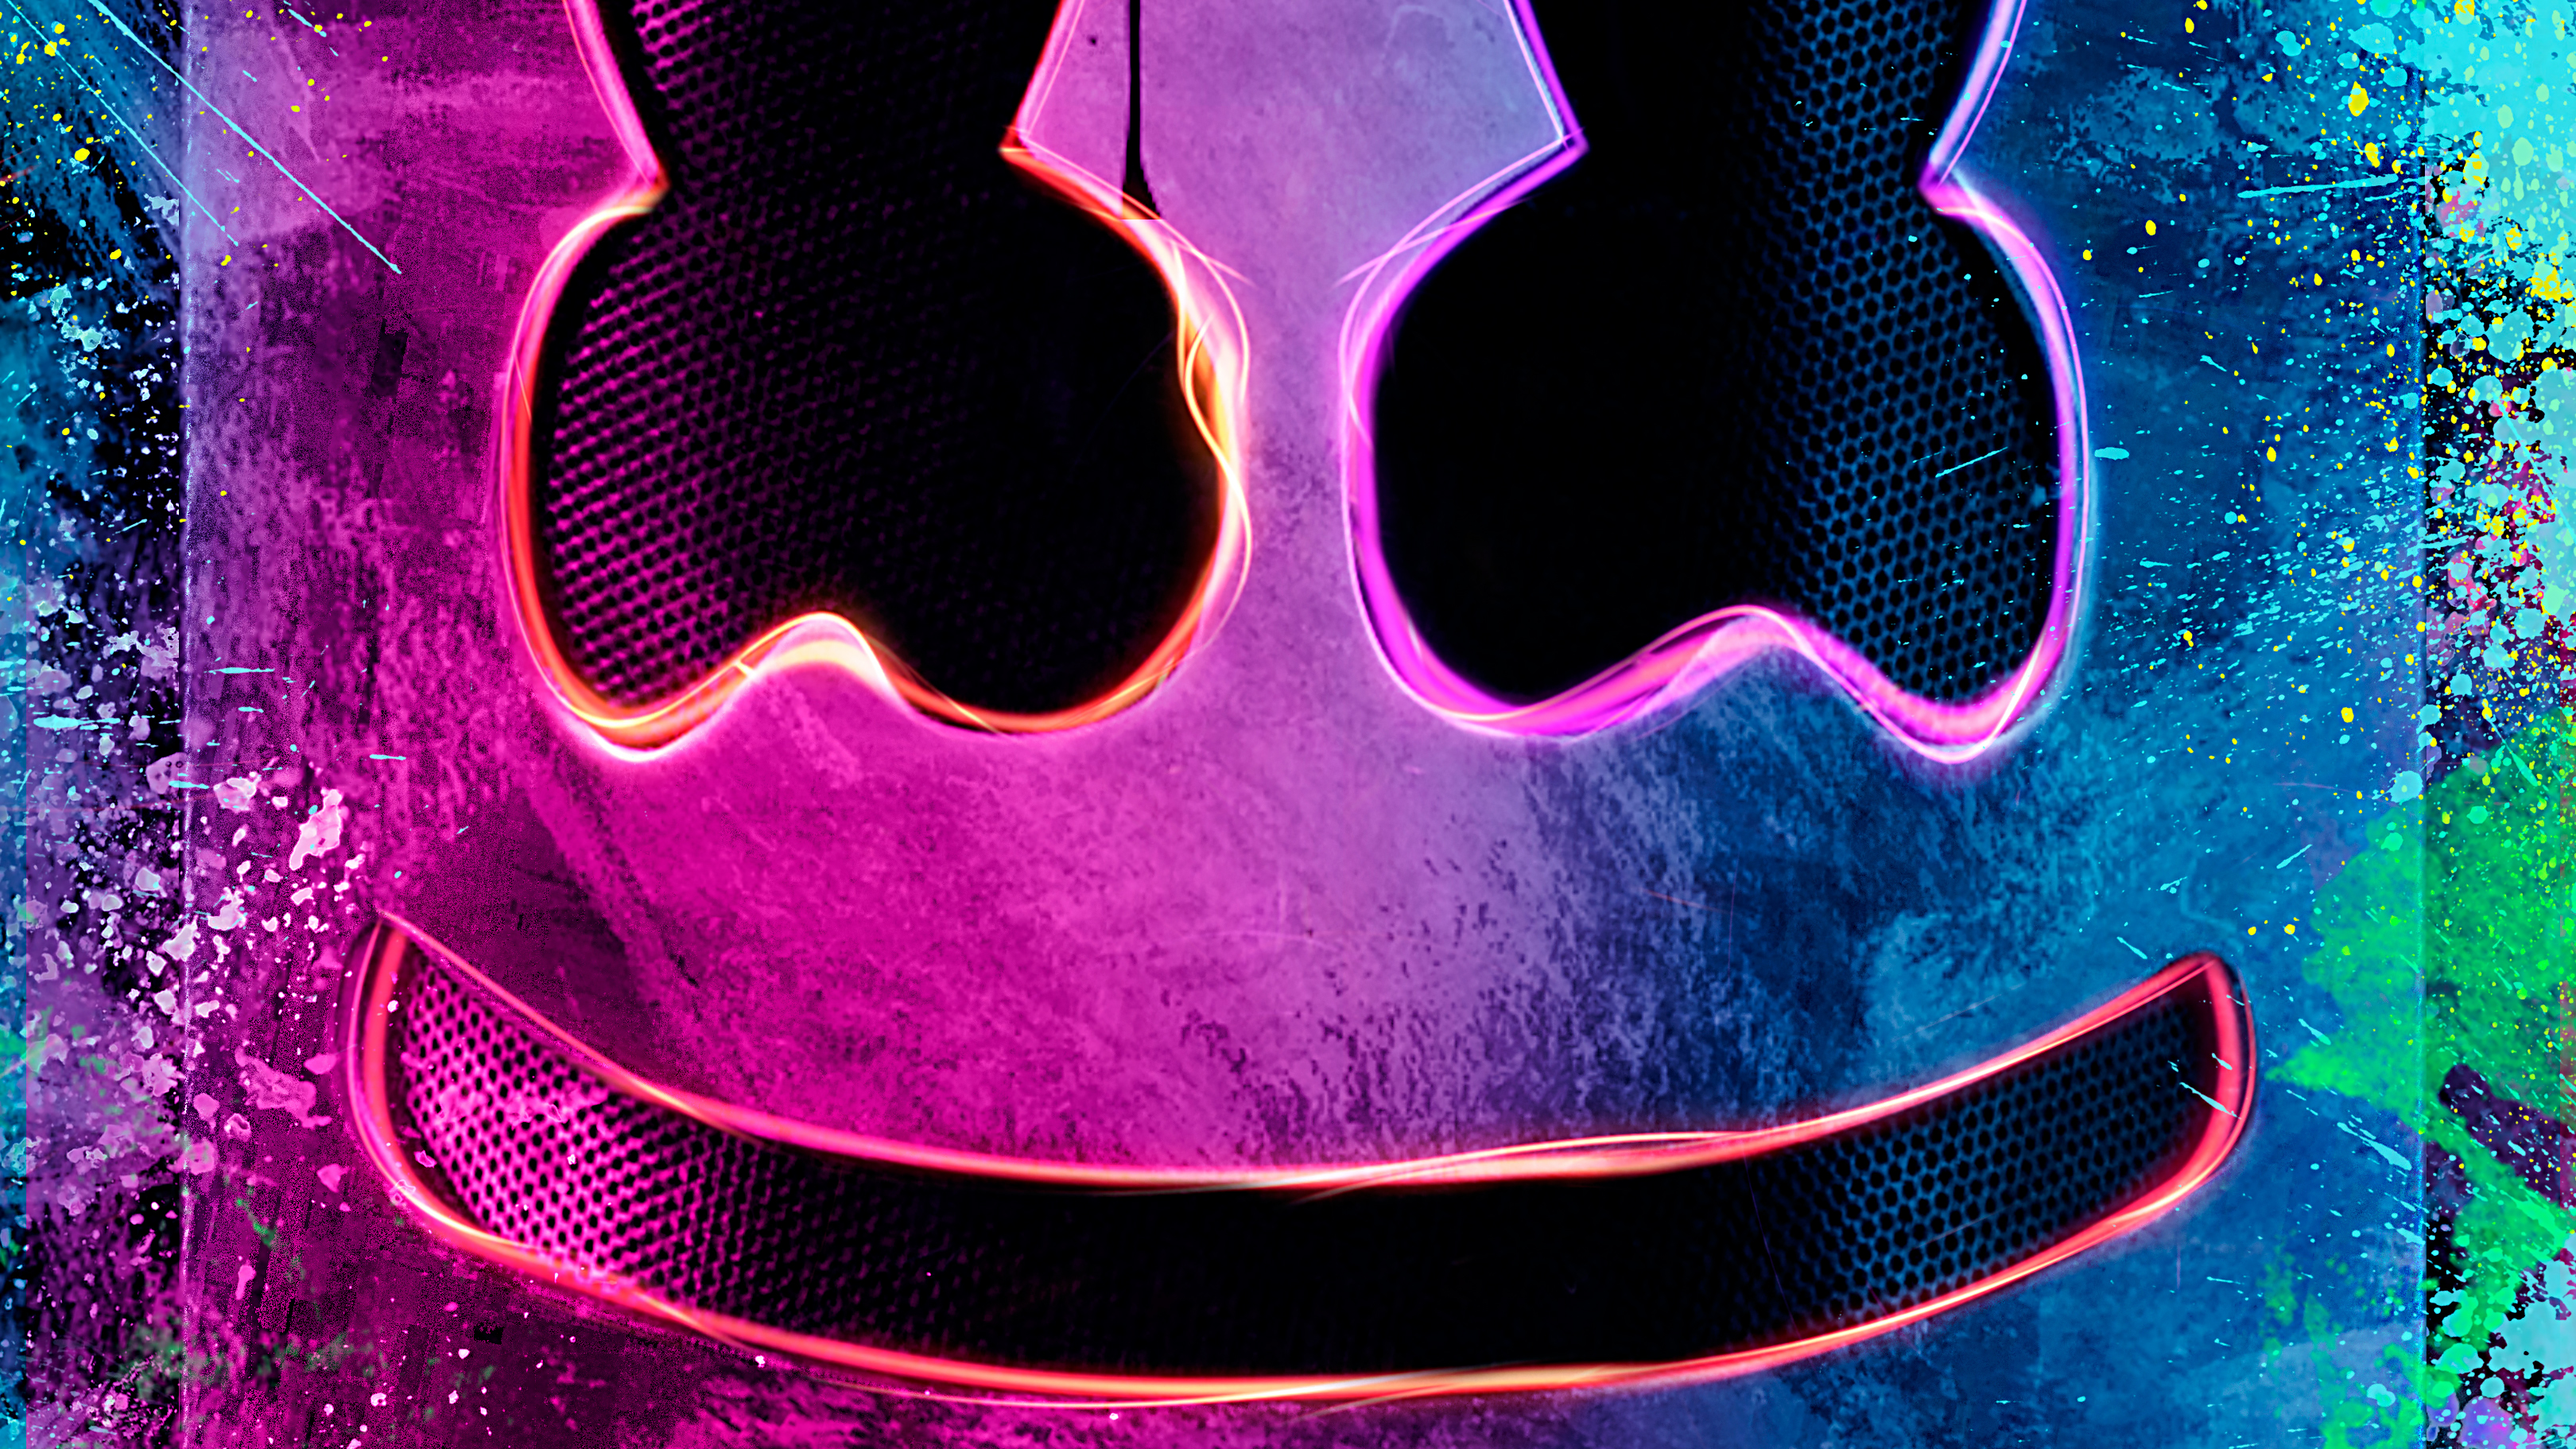 Dj Marshmello Wallpaper Posted By Ethan Simpson